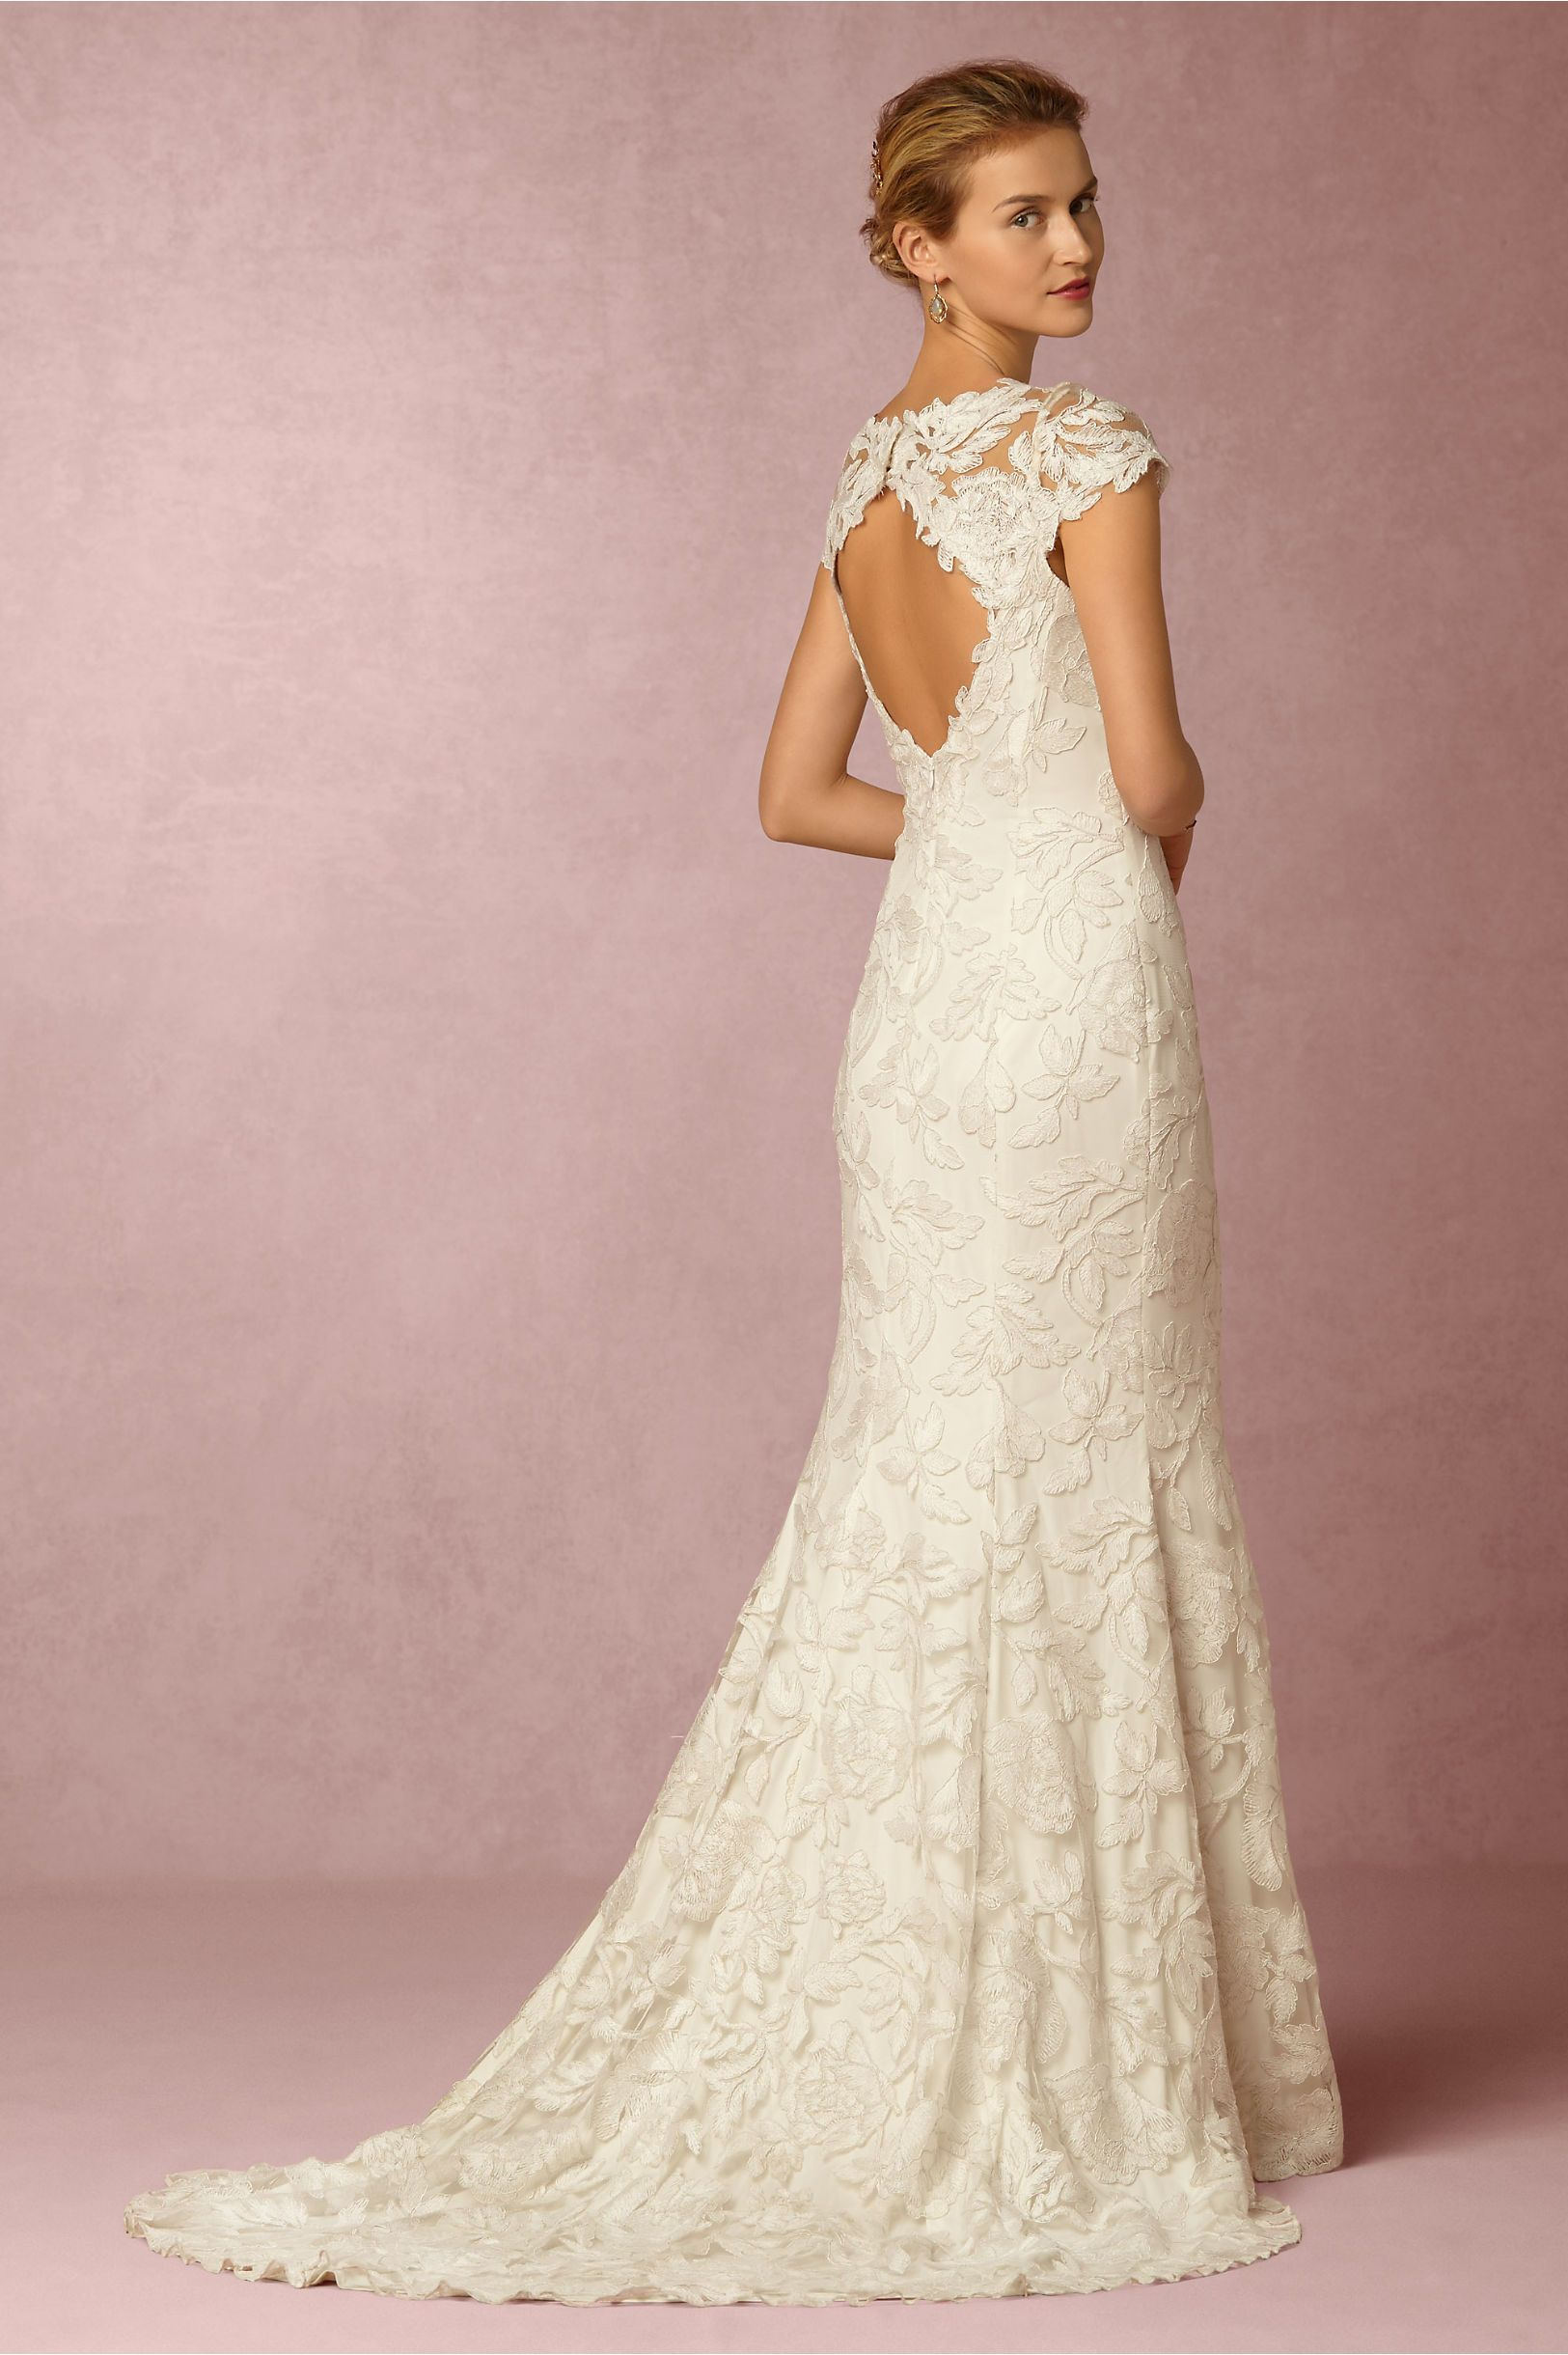 Jcrew wedding dress  The  best images about Ali wedding on Pinterest  Flats Jcrew and